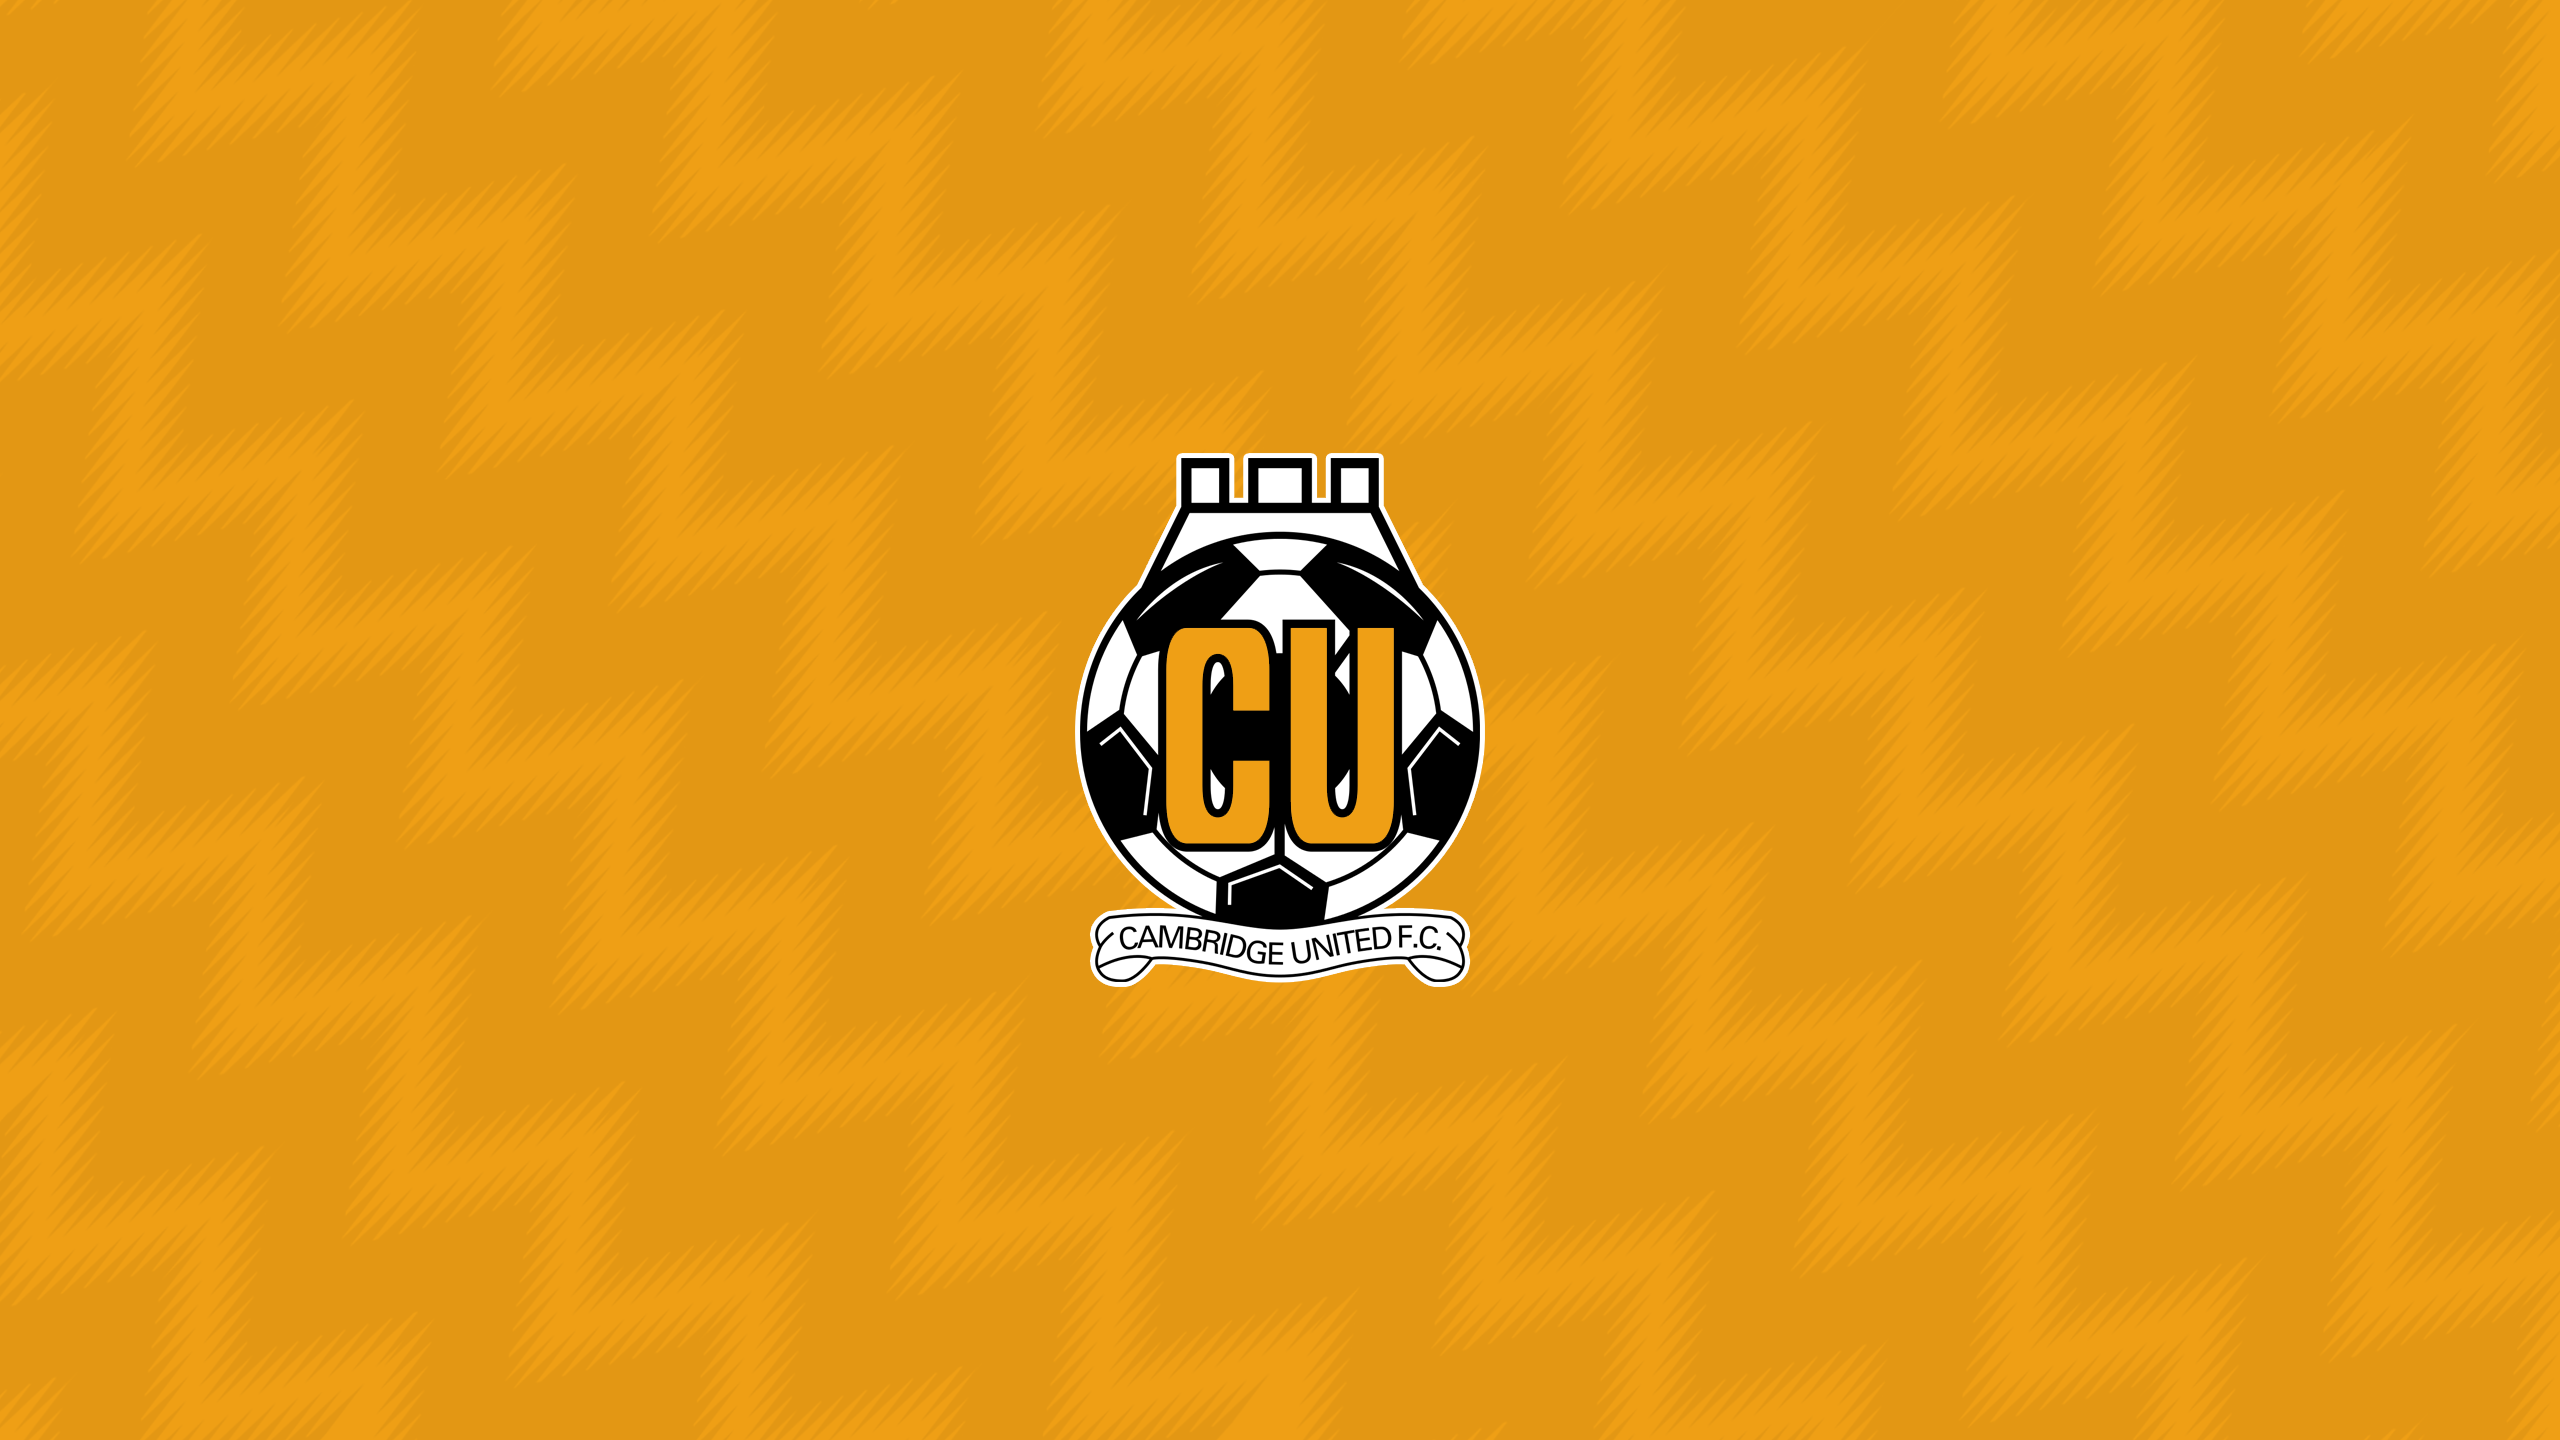 Cambridge United FC